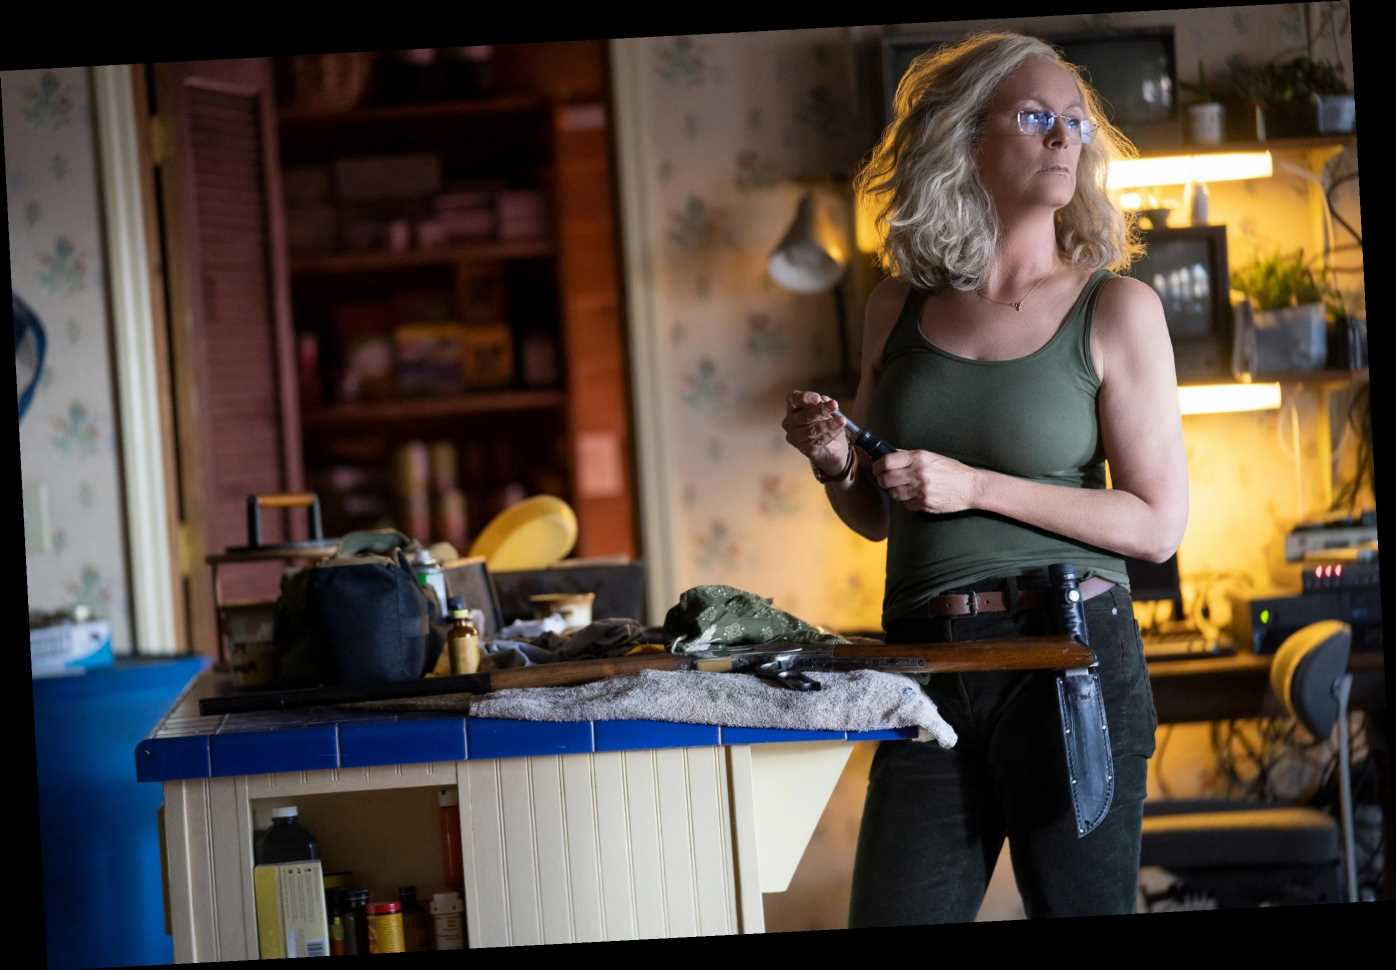 See Jamie Lee Curtis photo from first day of filming Halloween sequel